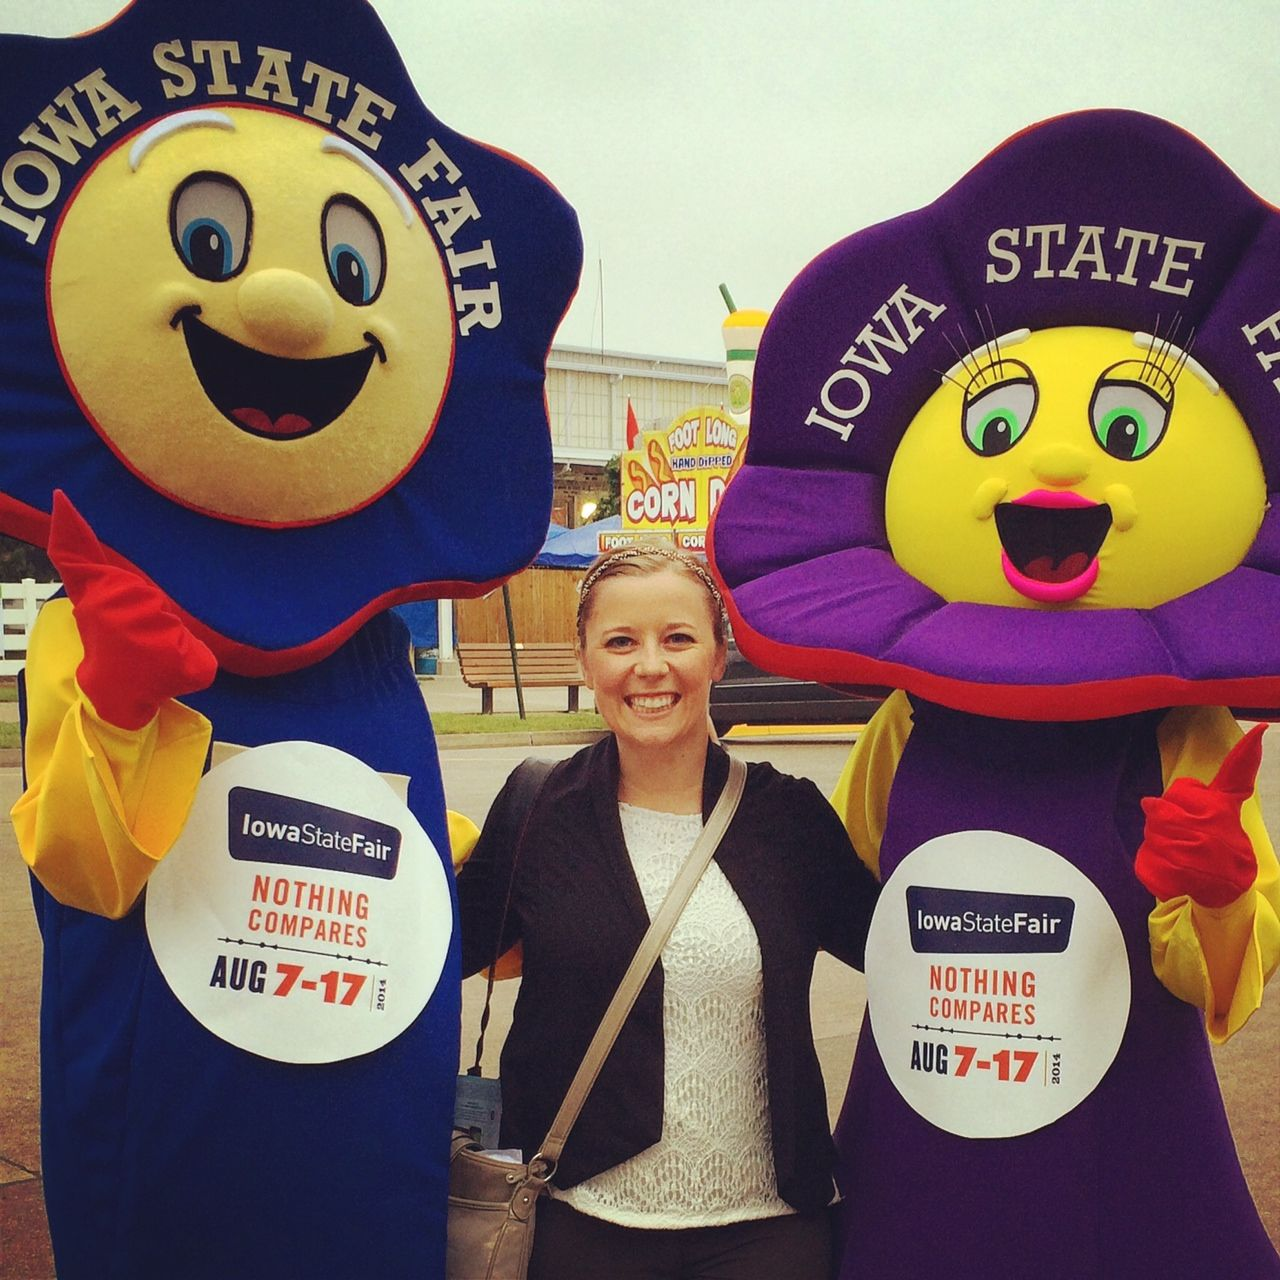 Iowa State Fair must-sees - Small Stuff Counts